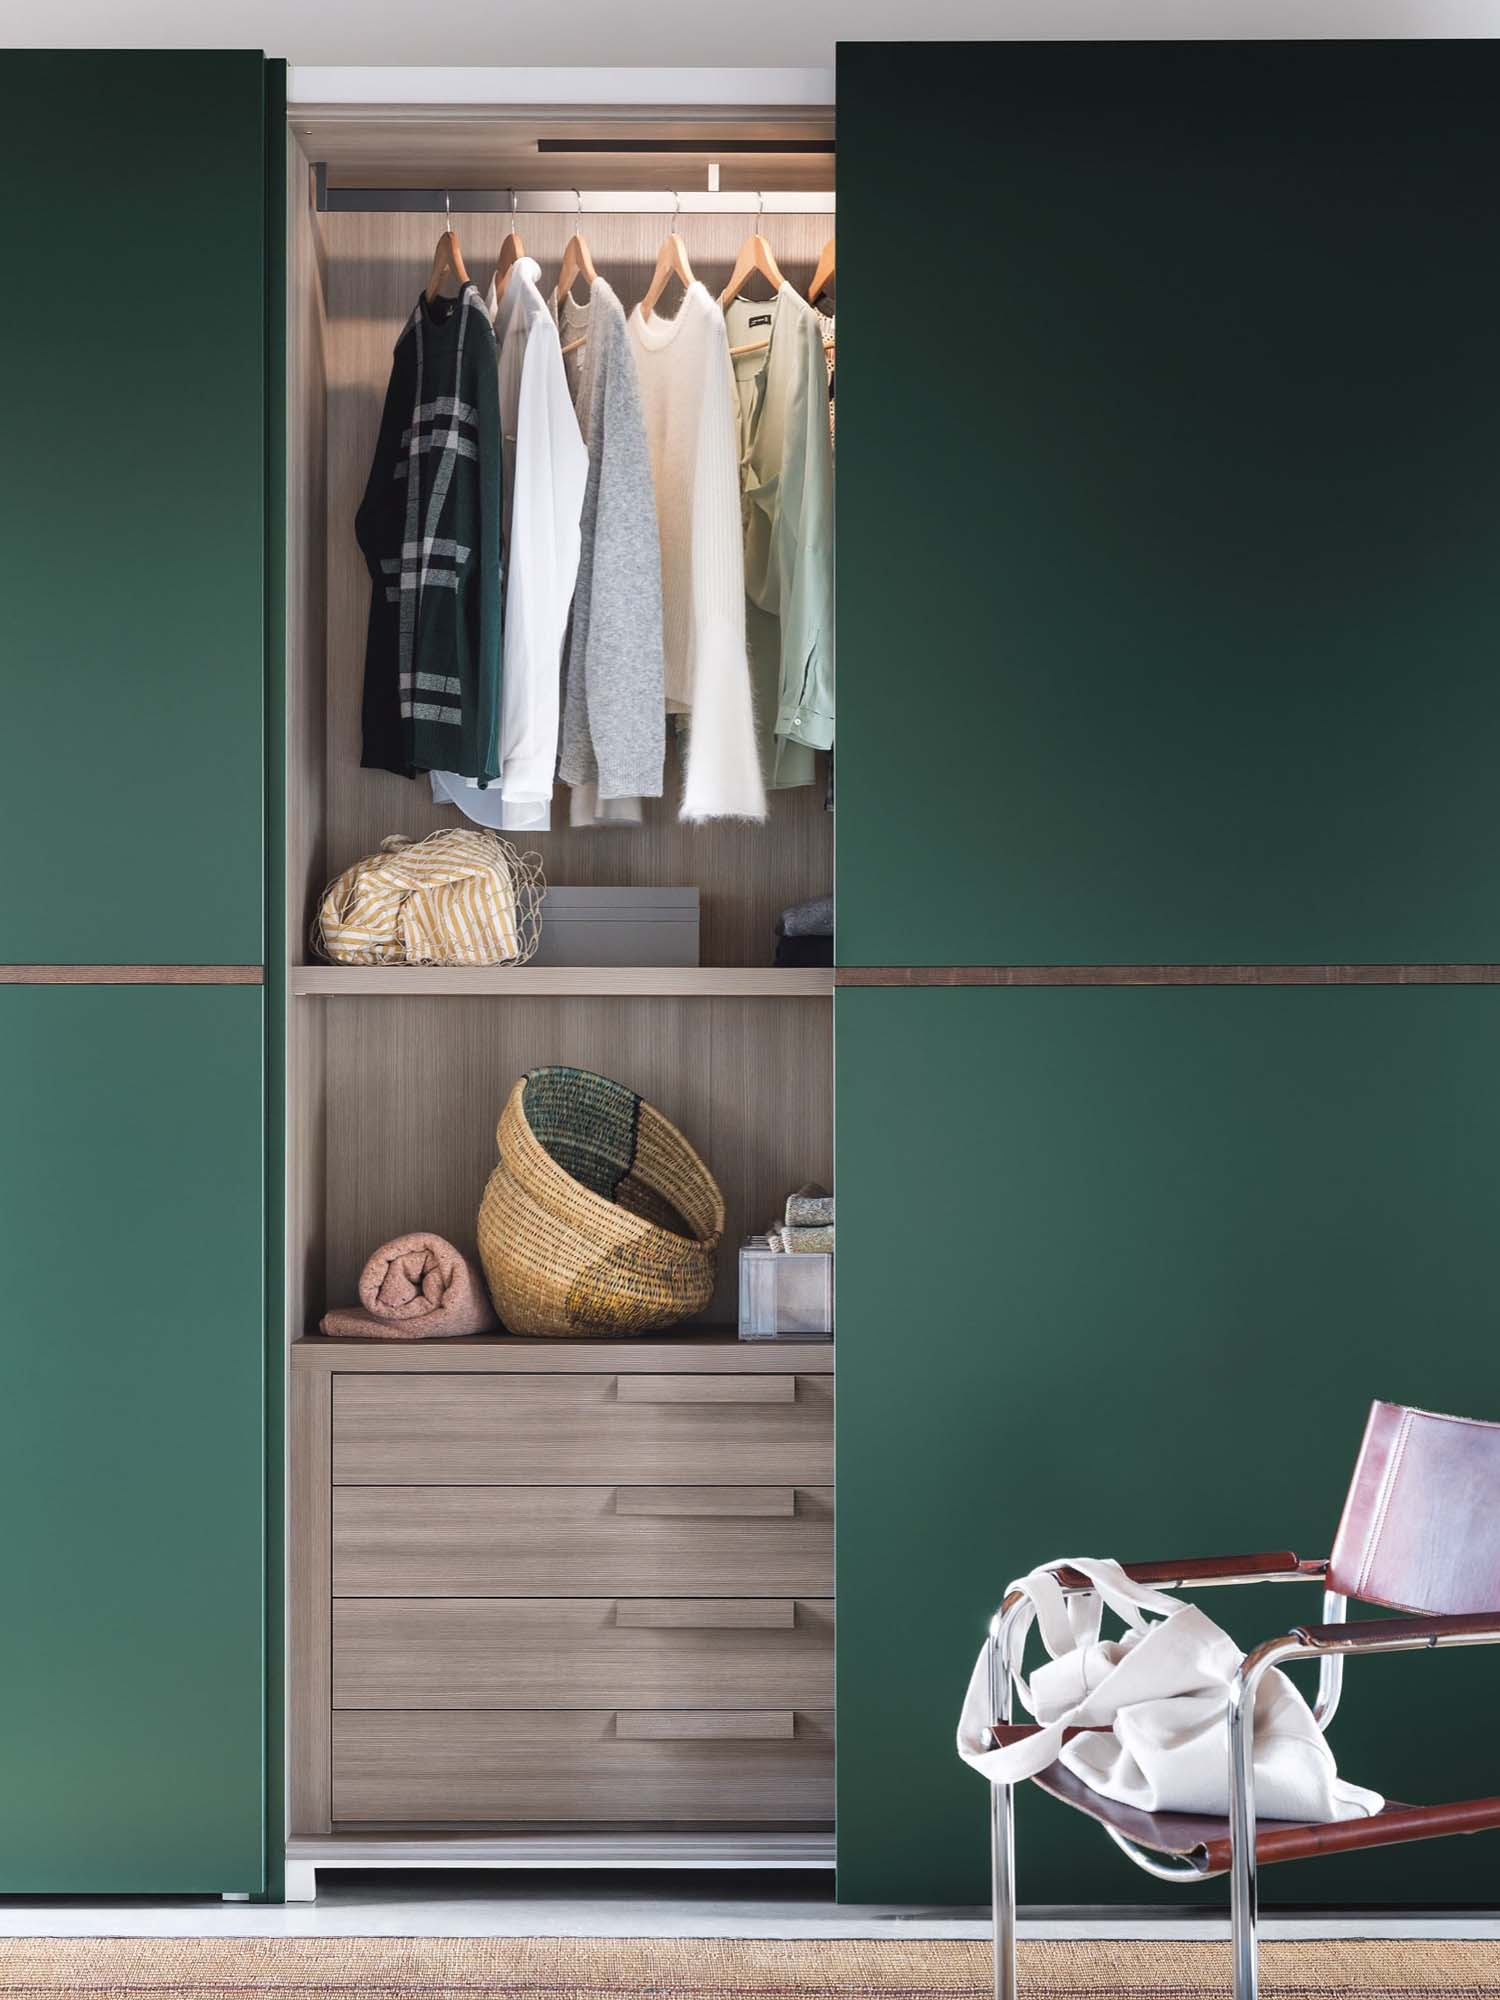 Novamobili Green Wardrobe Open | Hubble Kitchens & Interiors